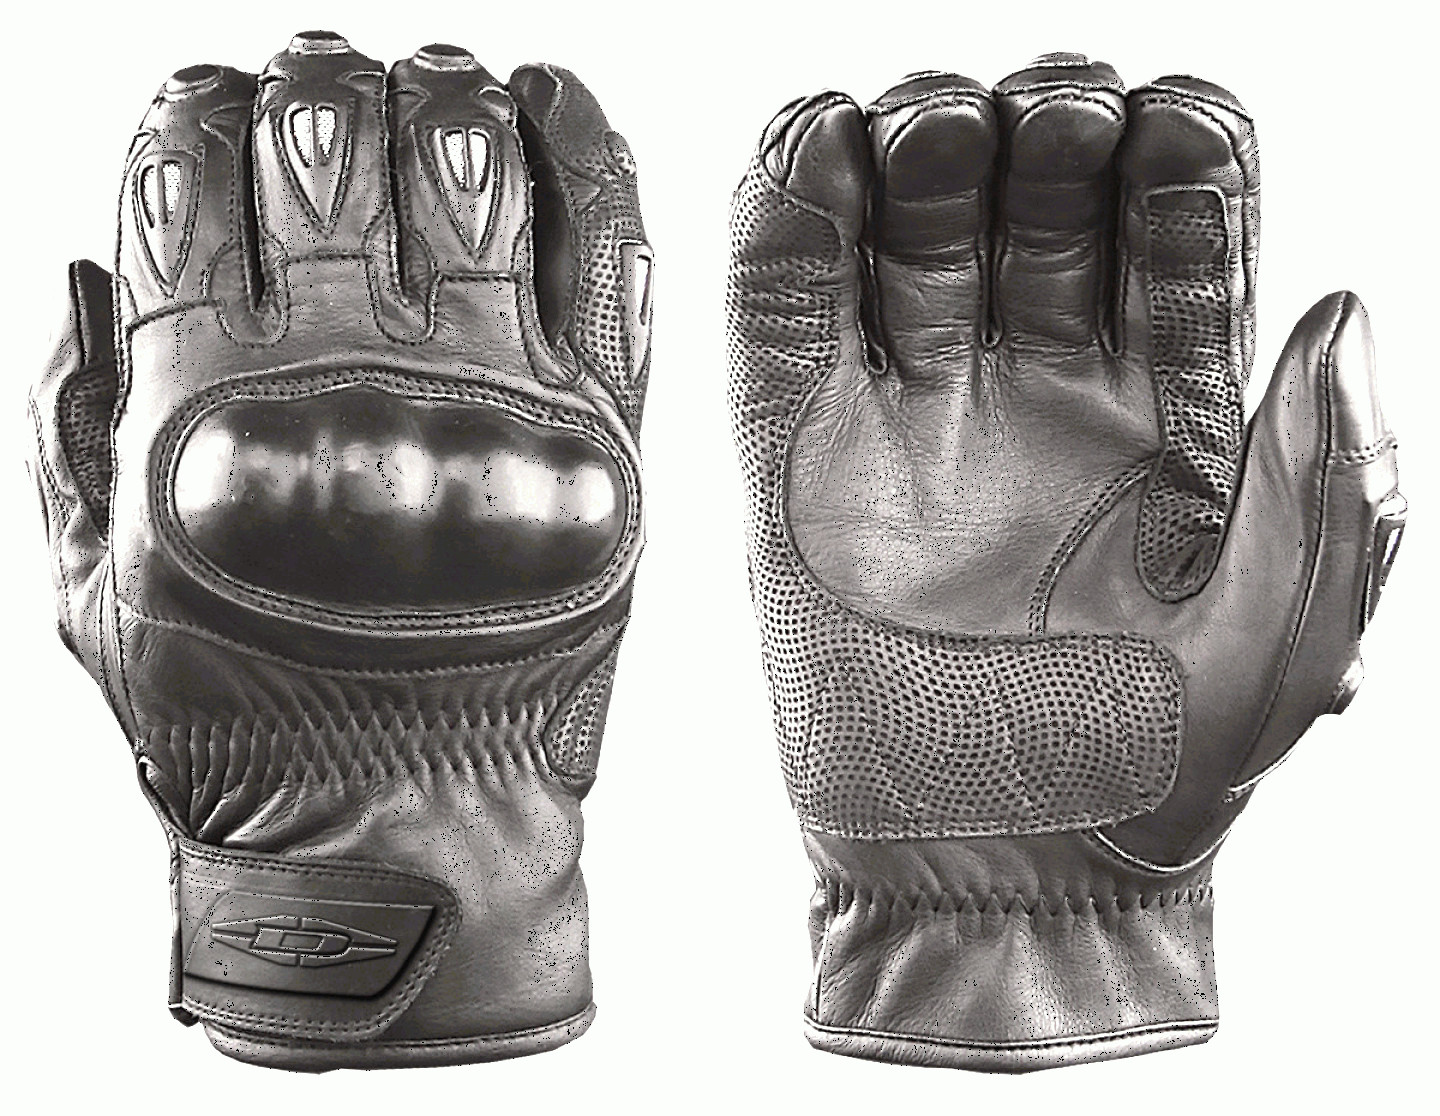 Damascus CRT 300 Vector 3 Gloves: Vector Hard Knuckle Riot Control Gloves P